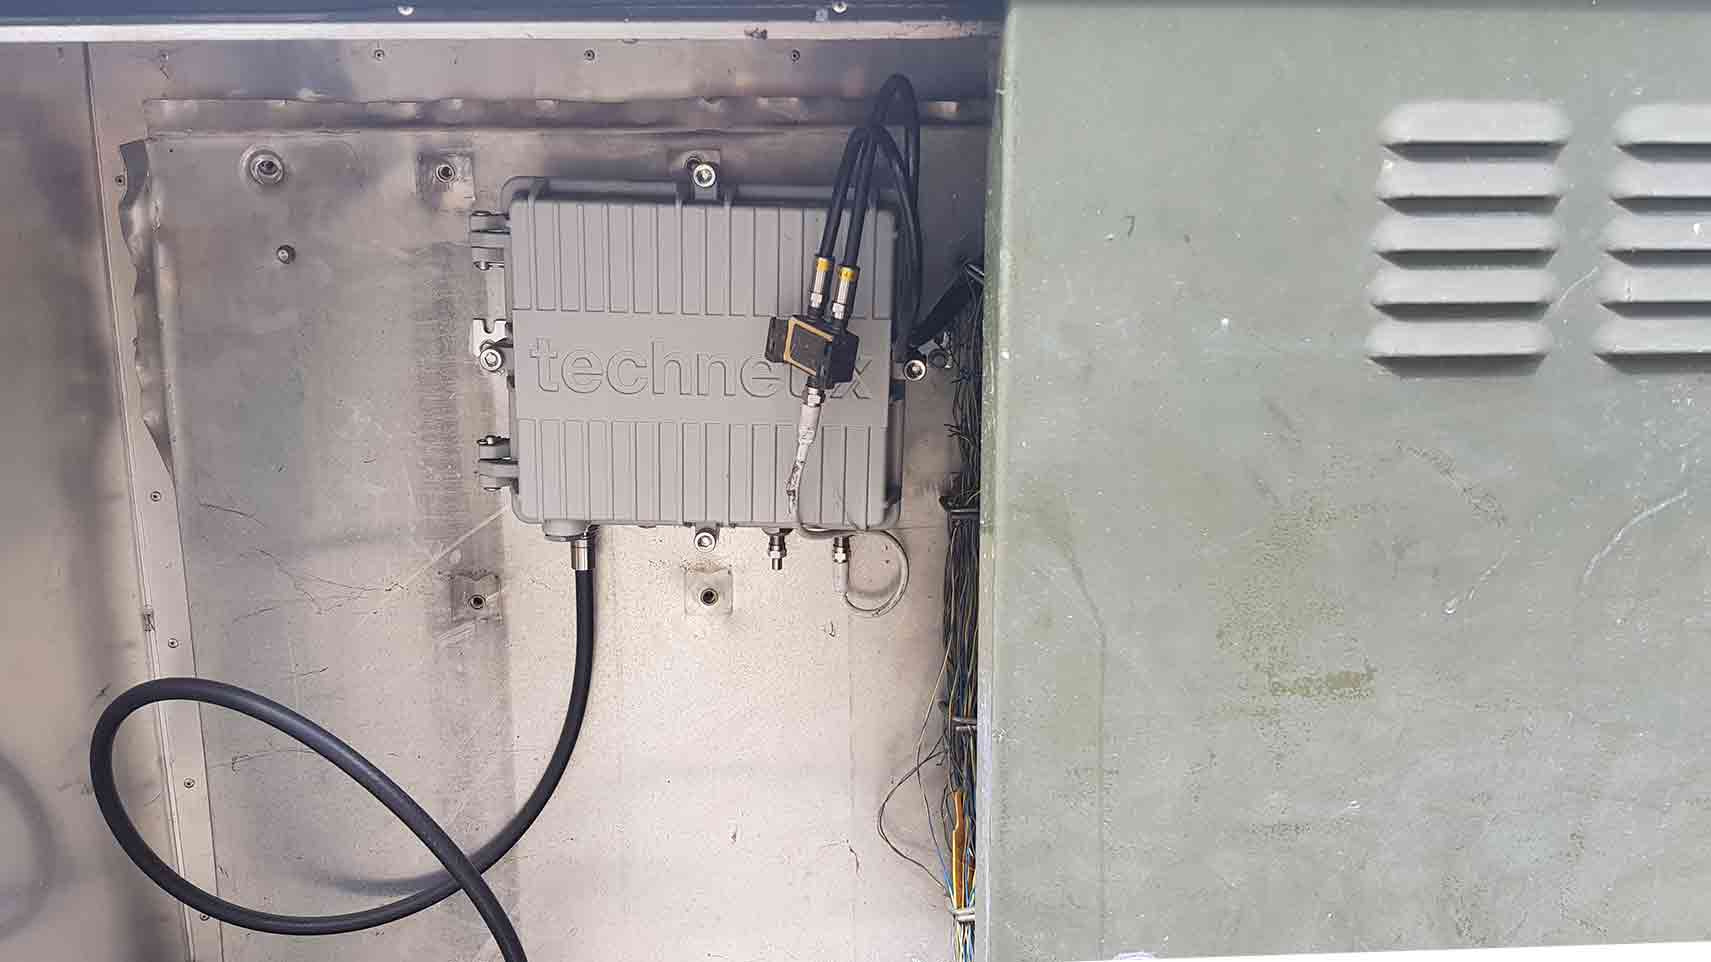 A photograph of the inside of a telecommunications box.